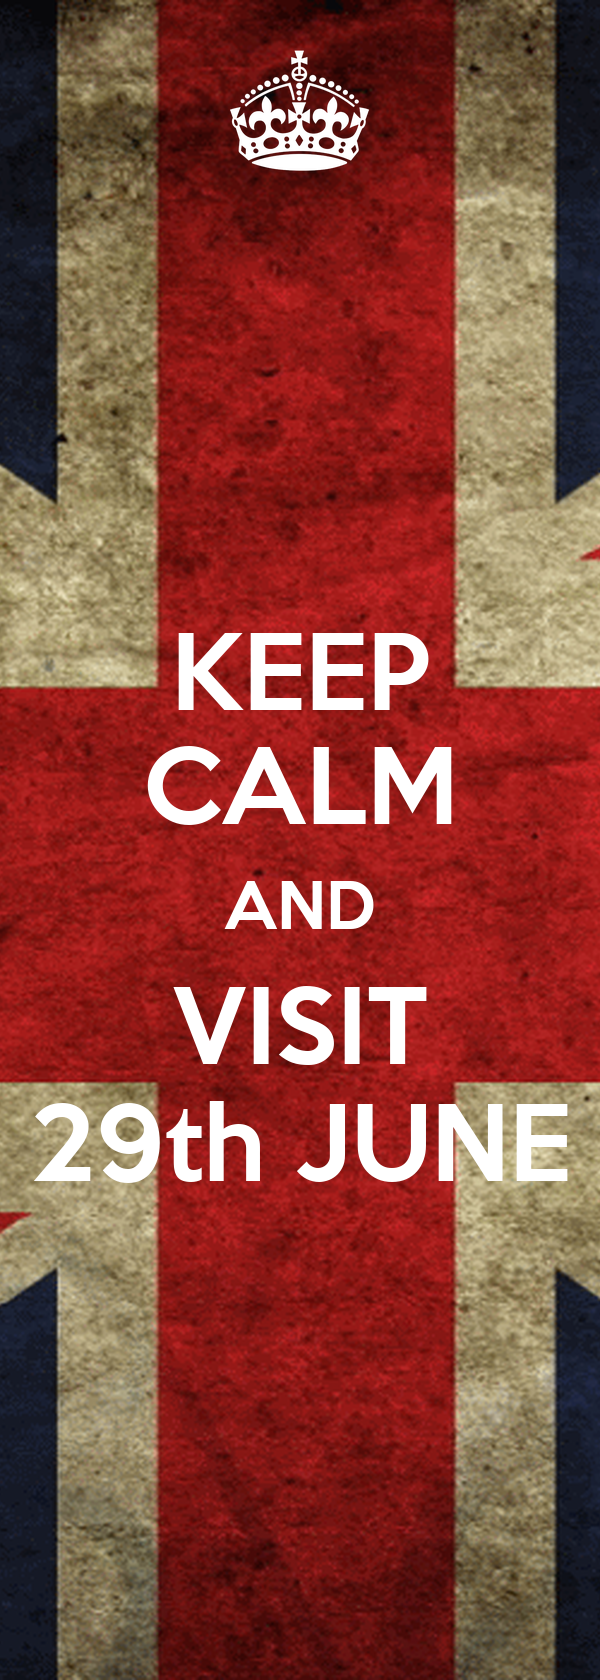 KEEP CALM AND VISIT 29th JUNE